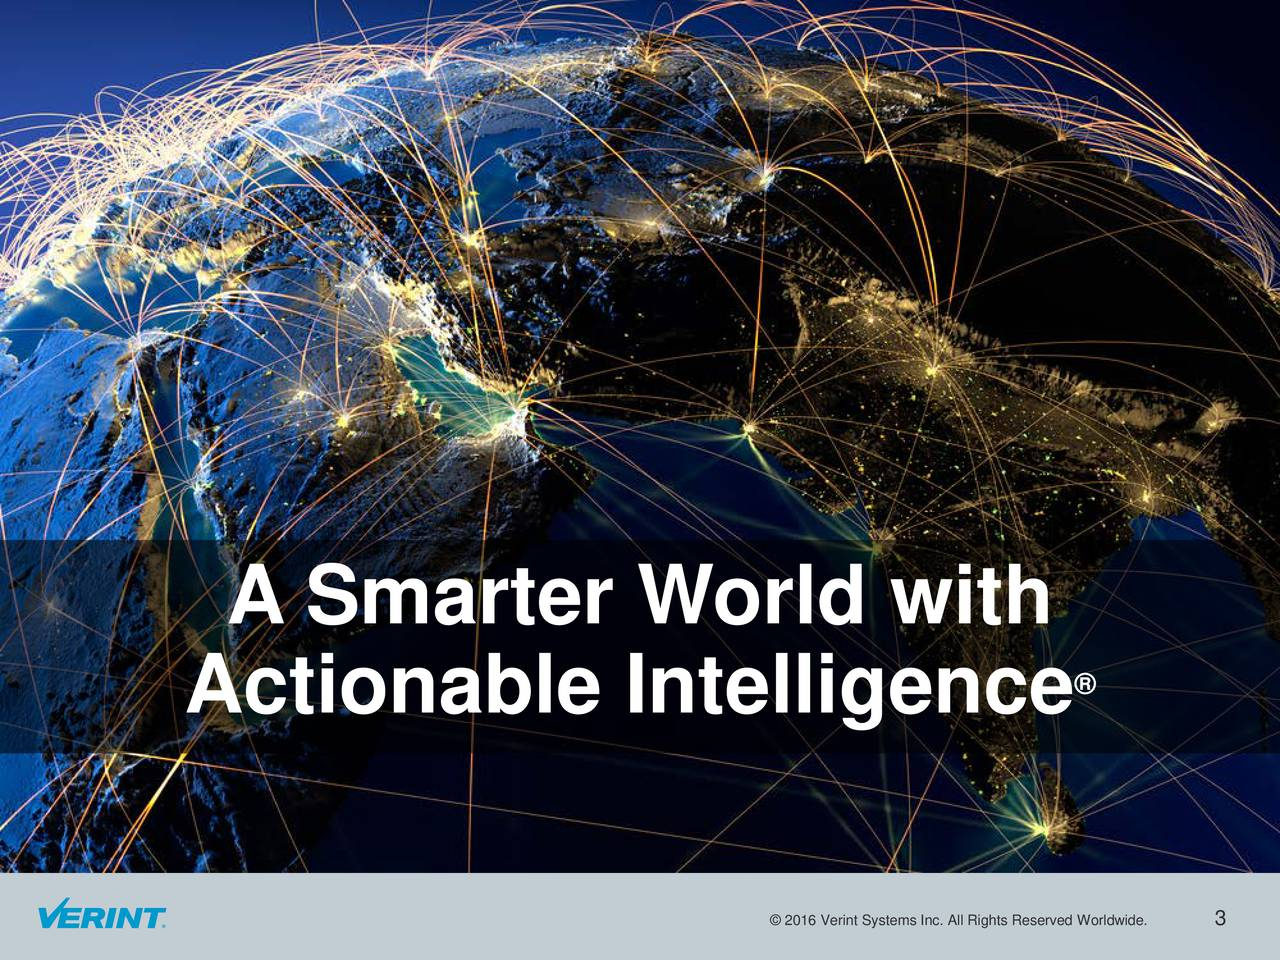 Actionable Intelligence 2016 Verint Systems Inc. All Rights Reserved Worldwide.